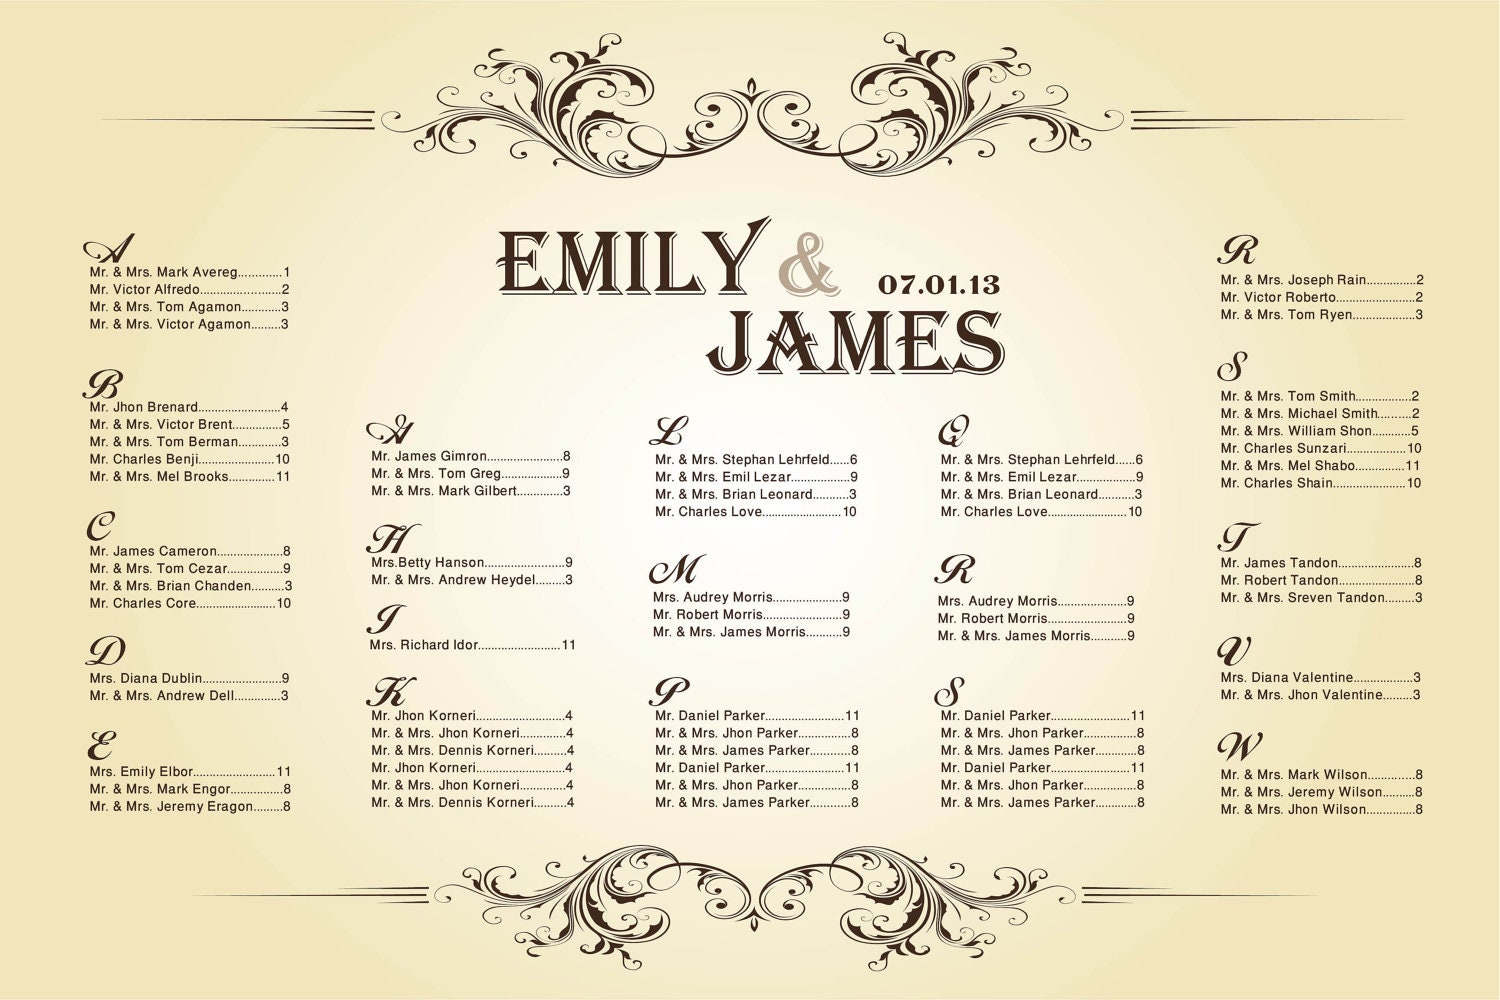 Charming Wedding Seating Chart Poster Template Word Mini Bridal Il Fullxfull Wedding Seating  Chart Poster Template Word